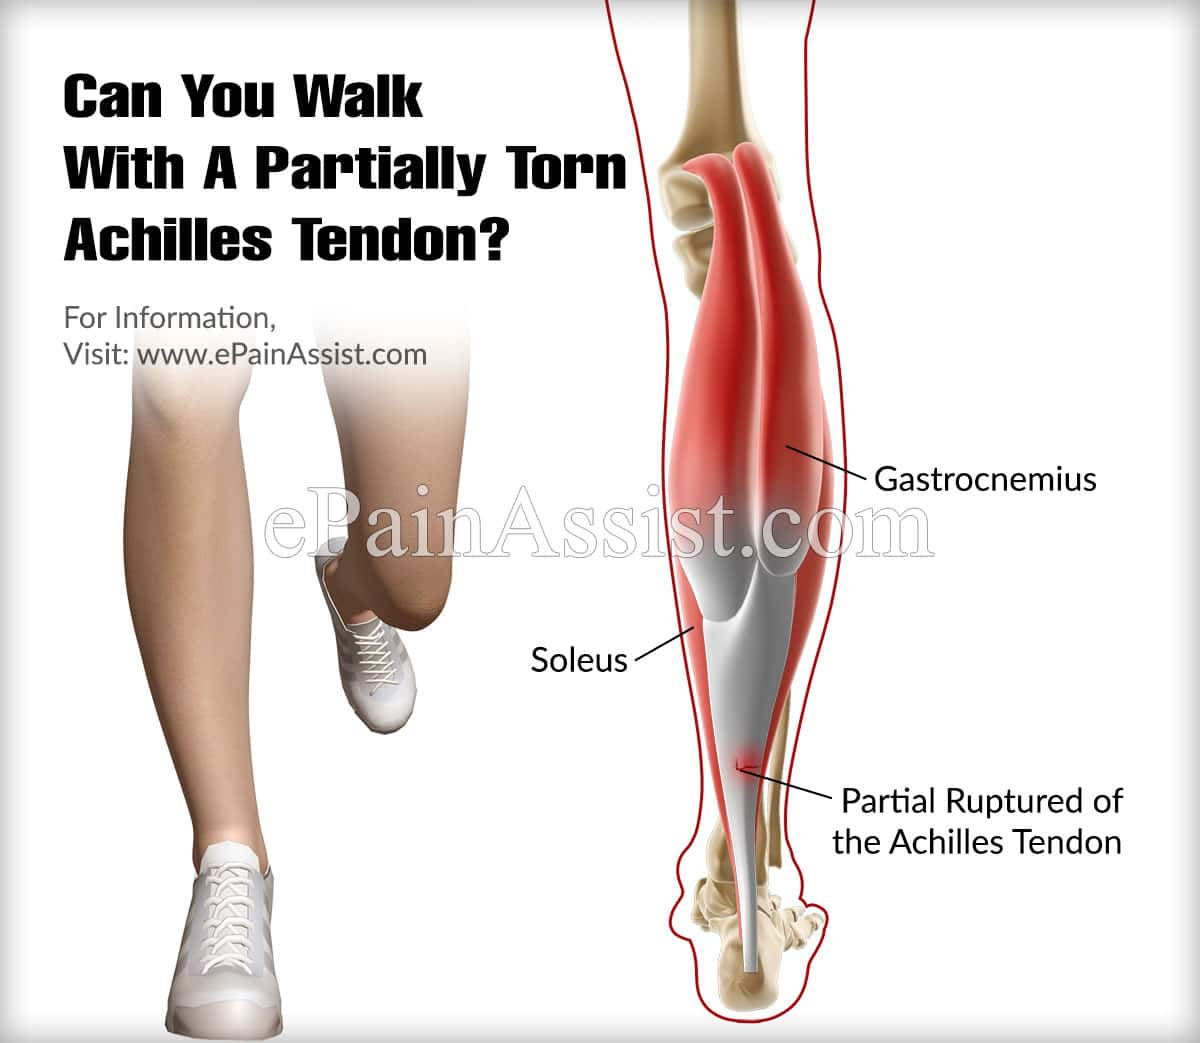 Can You Walk With A Partially Torn Achilles Tendon?